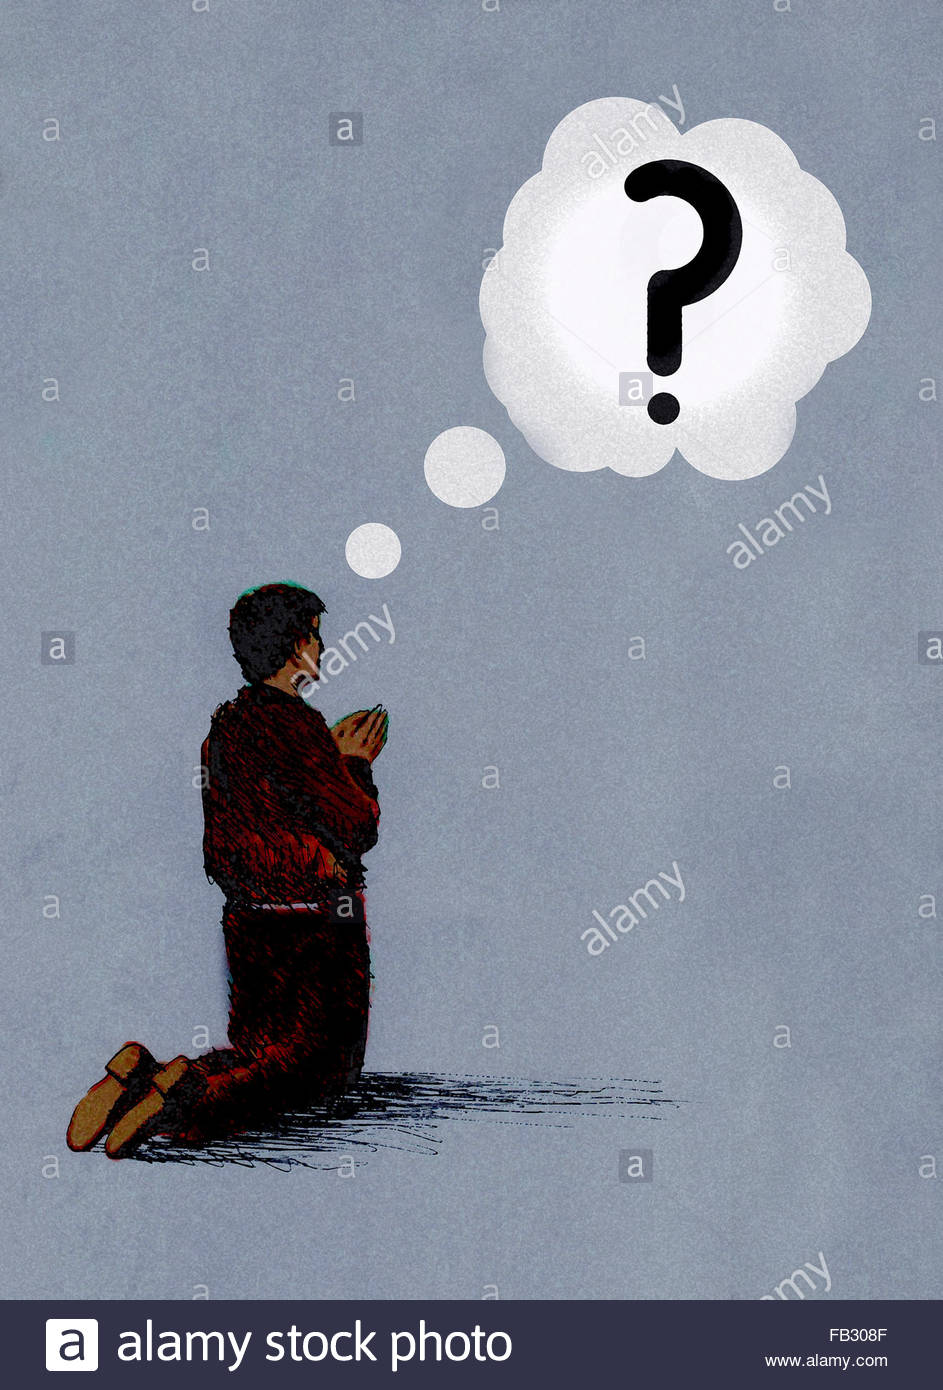 Man kneeling praying with question mark thought bubble - Stock Image